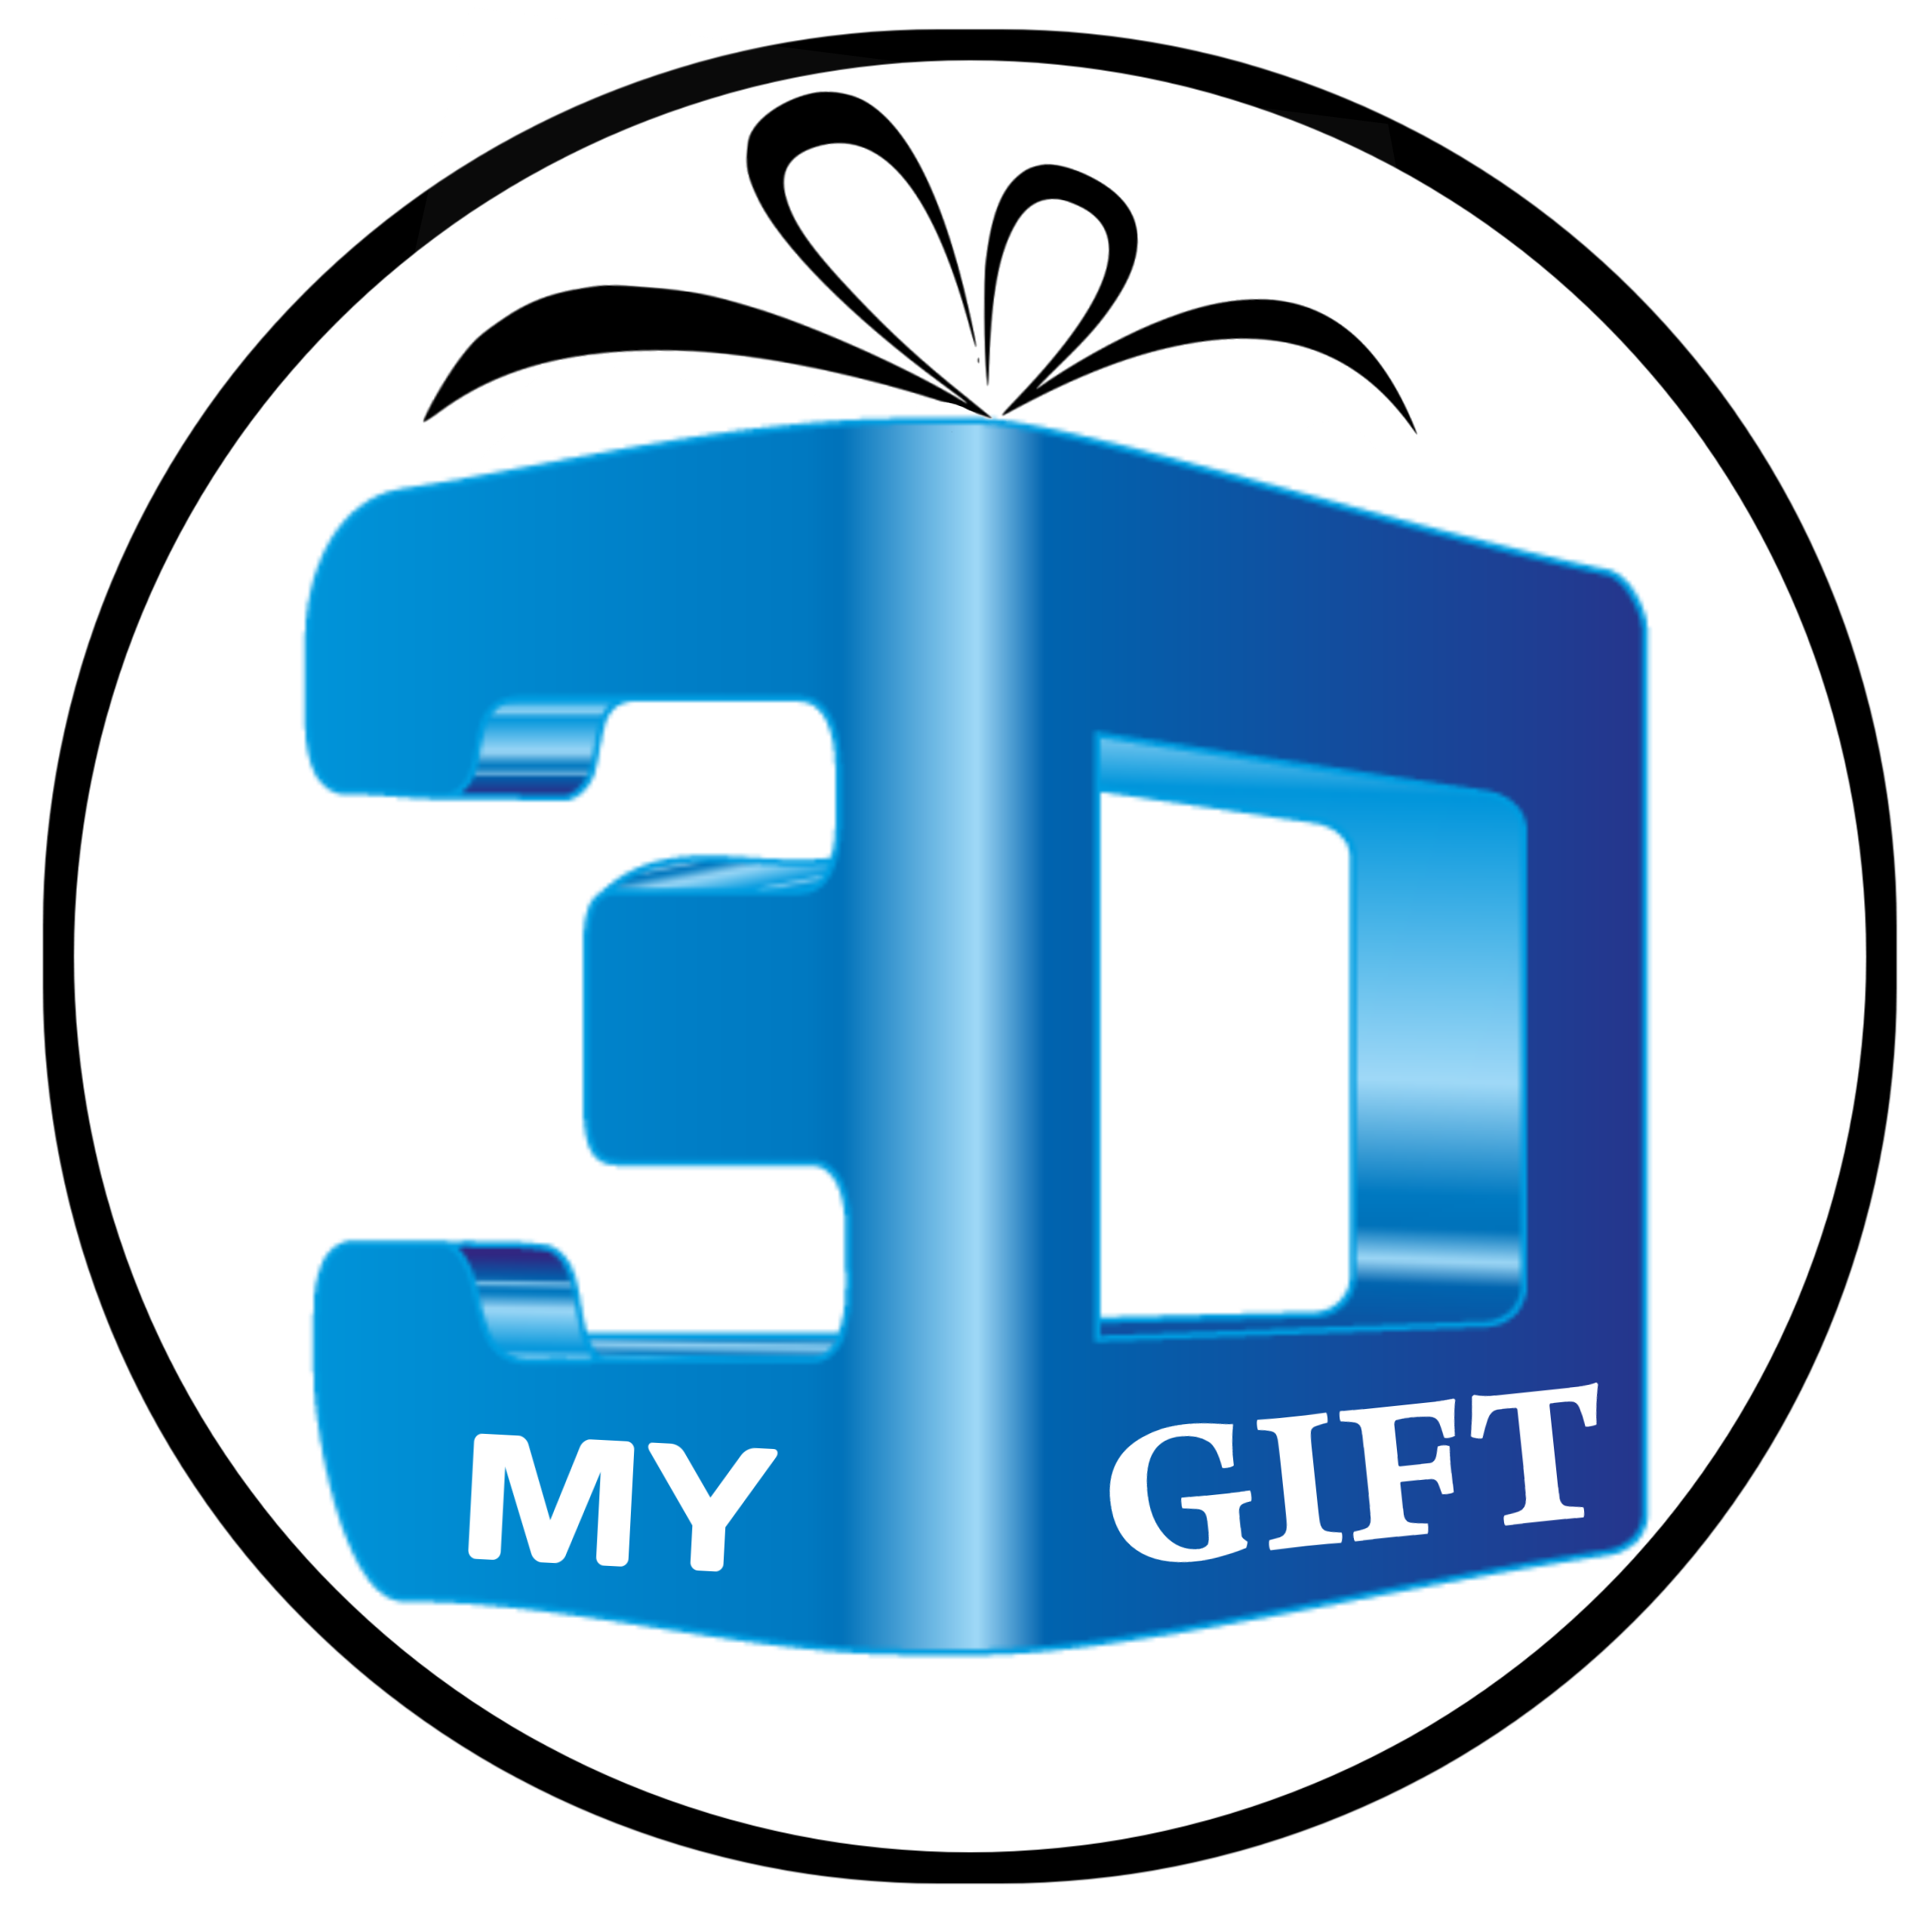 My 3D Gifts